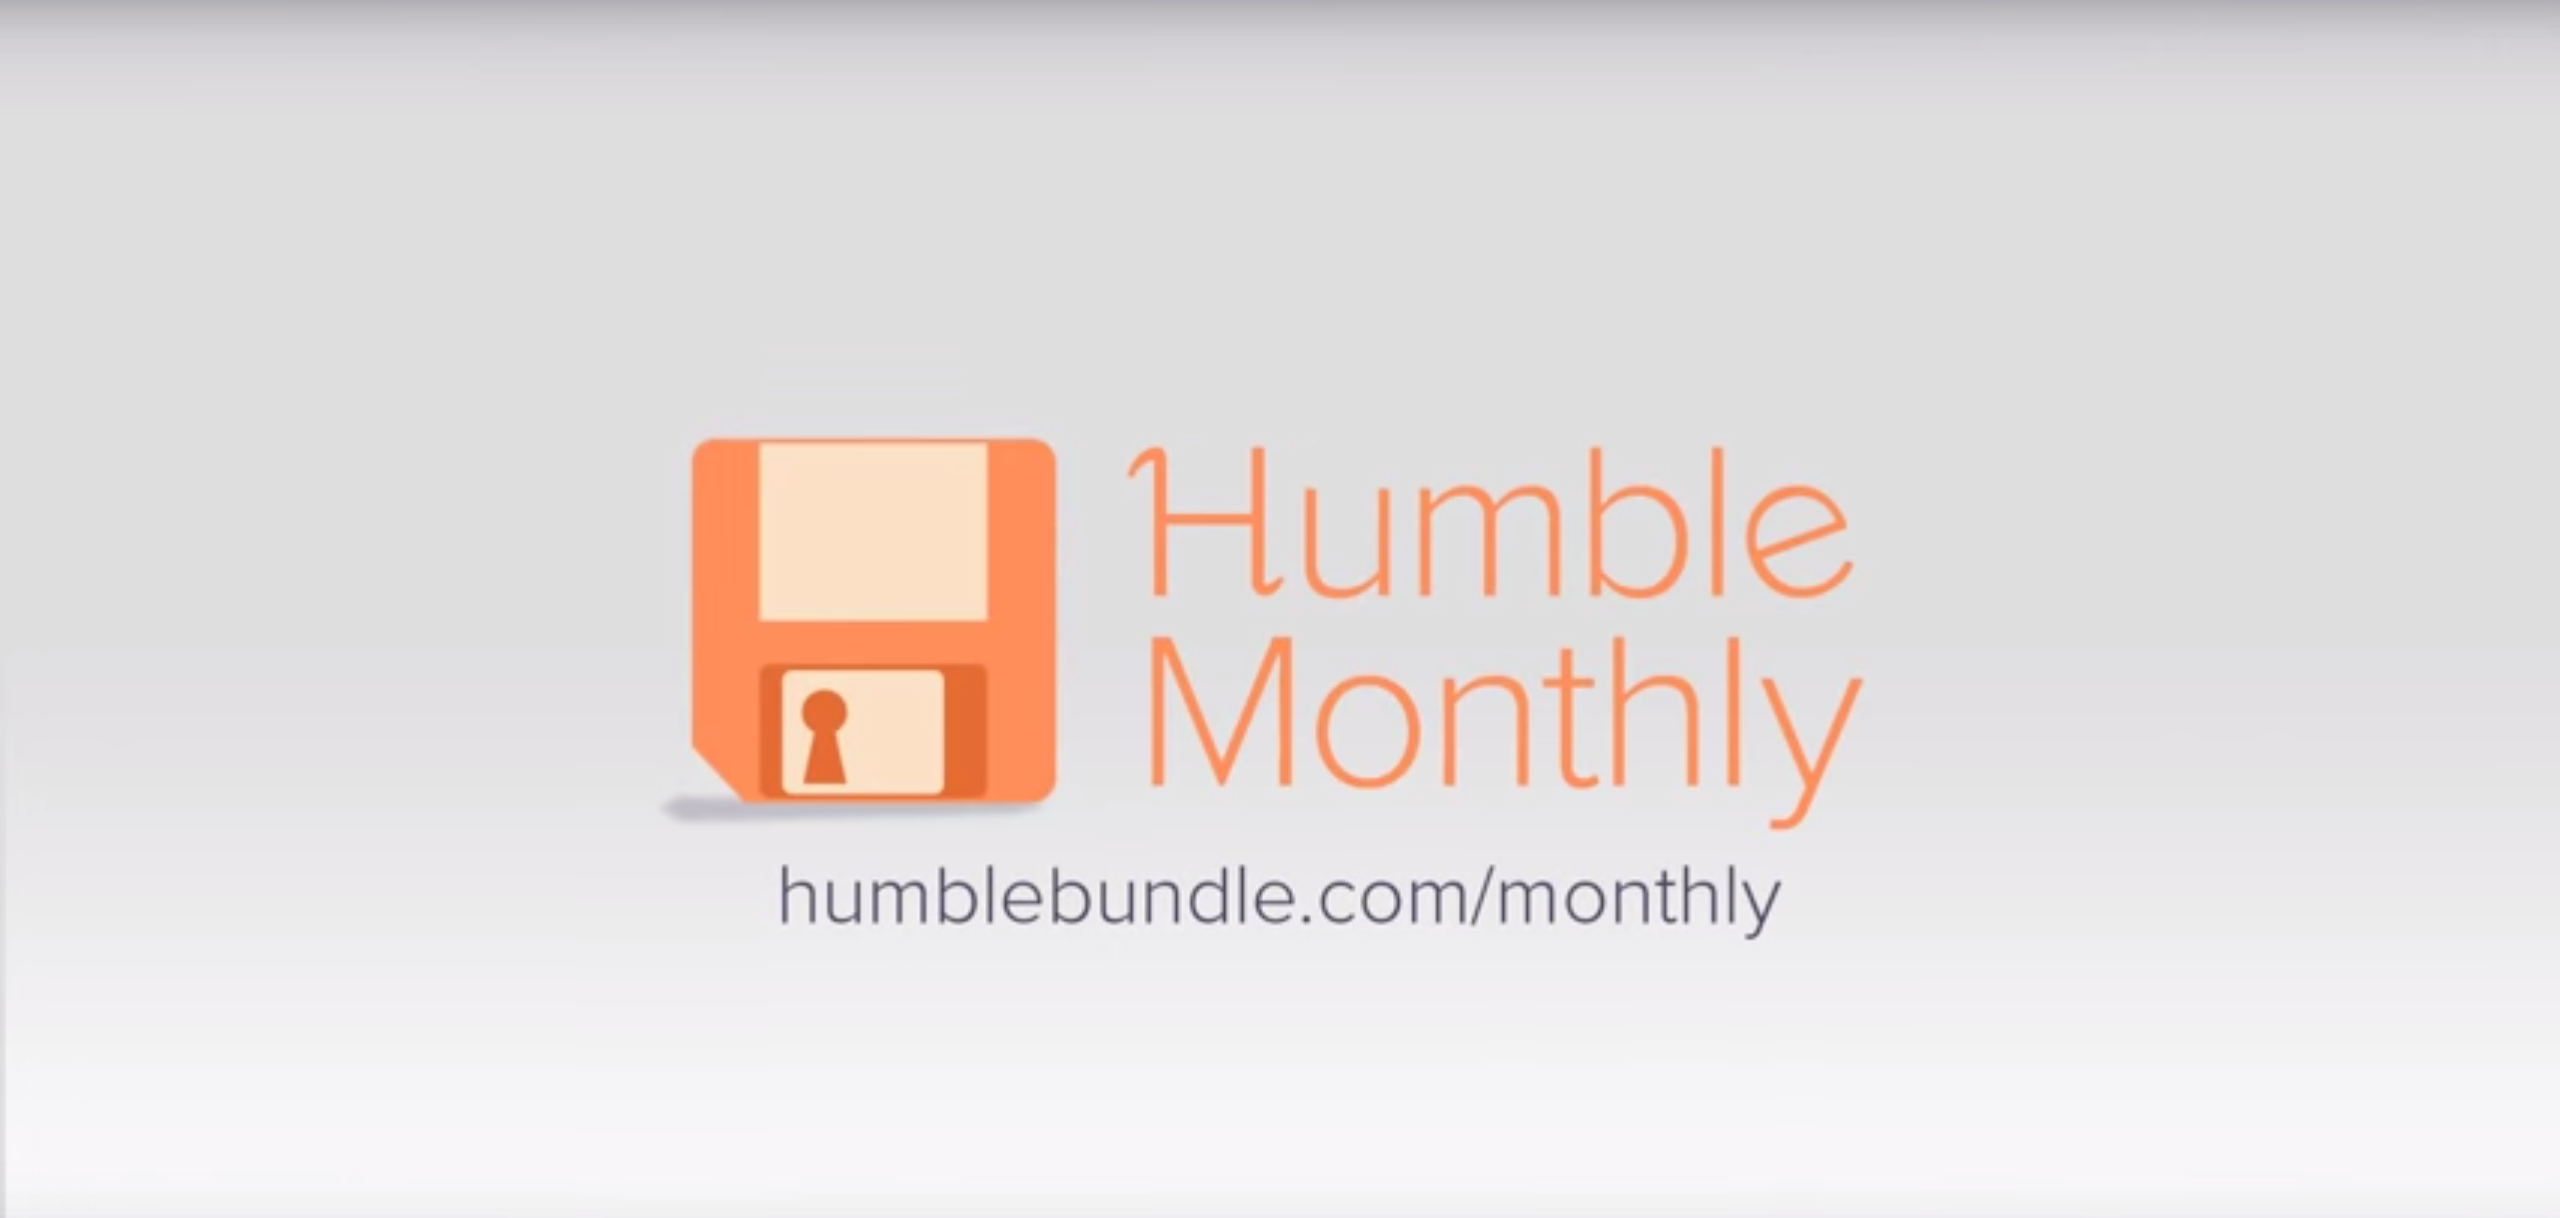 Humble Bundle will send you indie games every month for $12